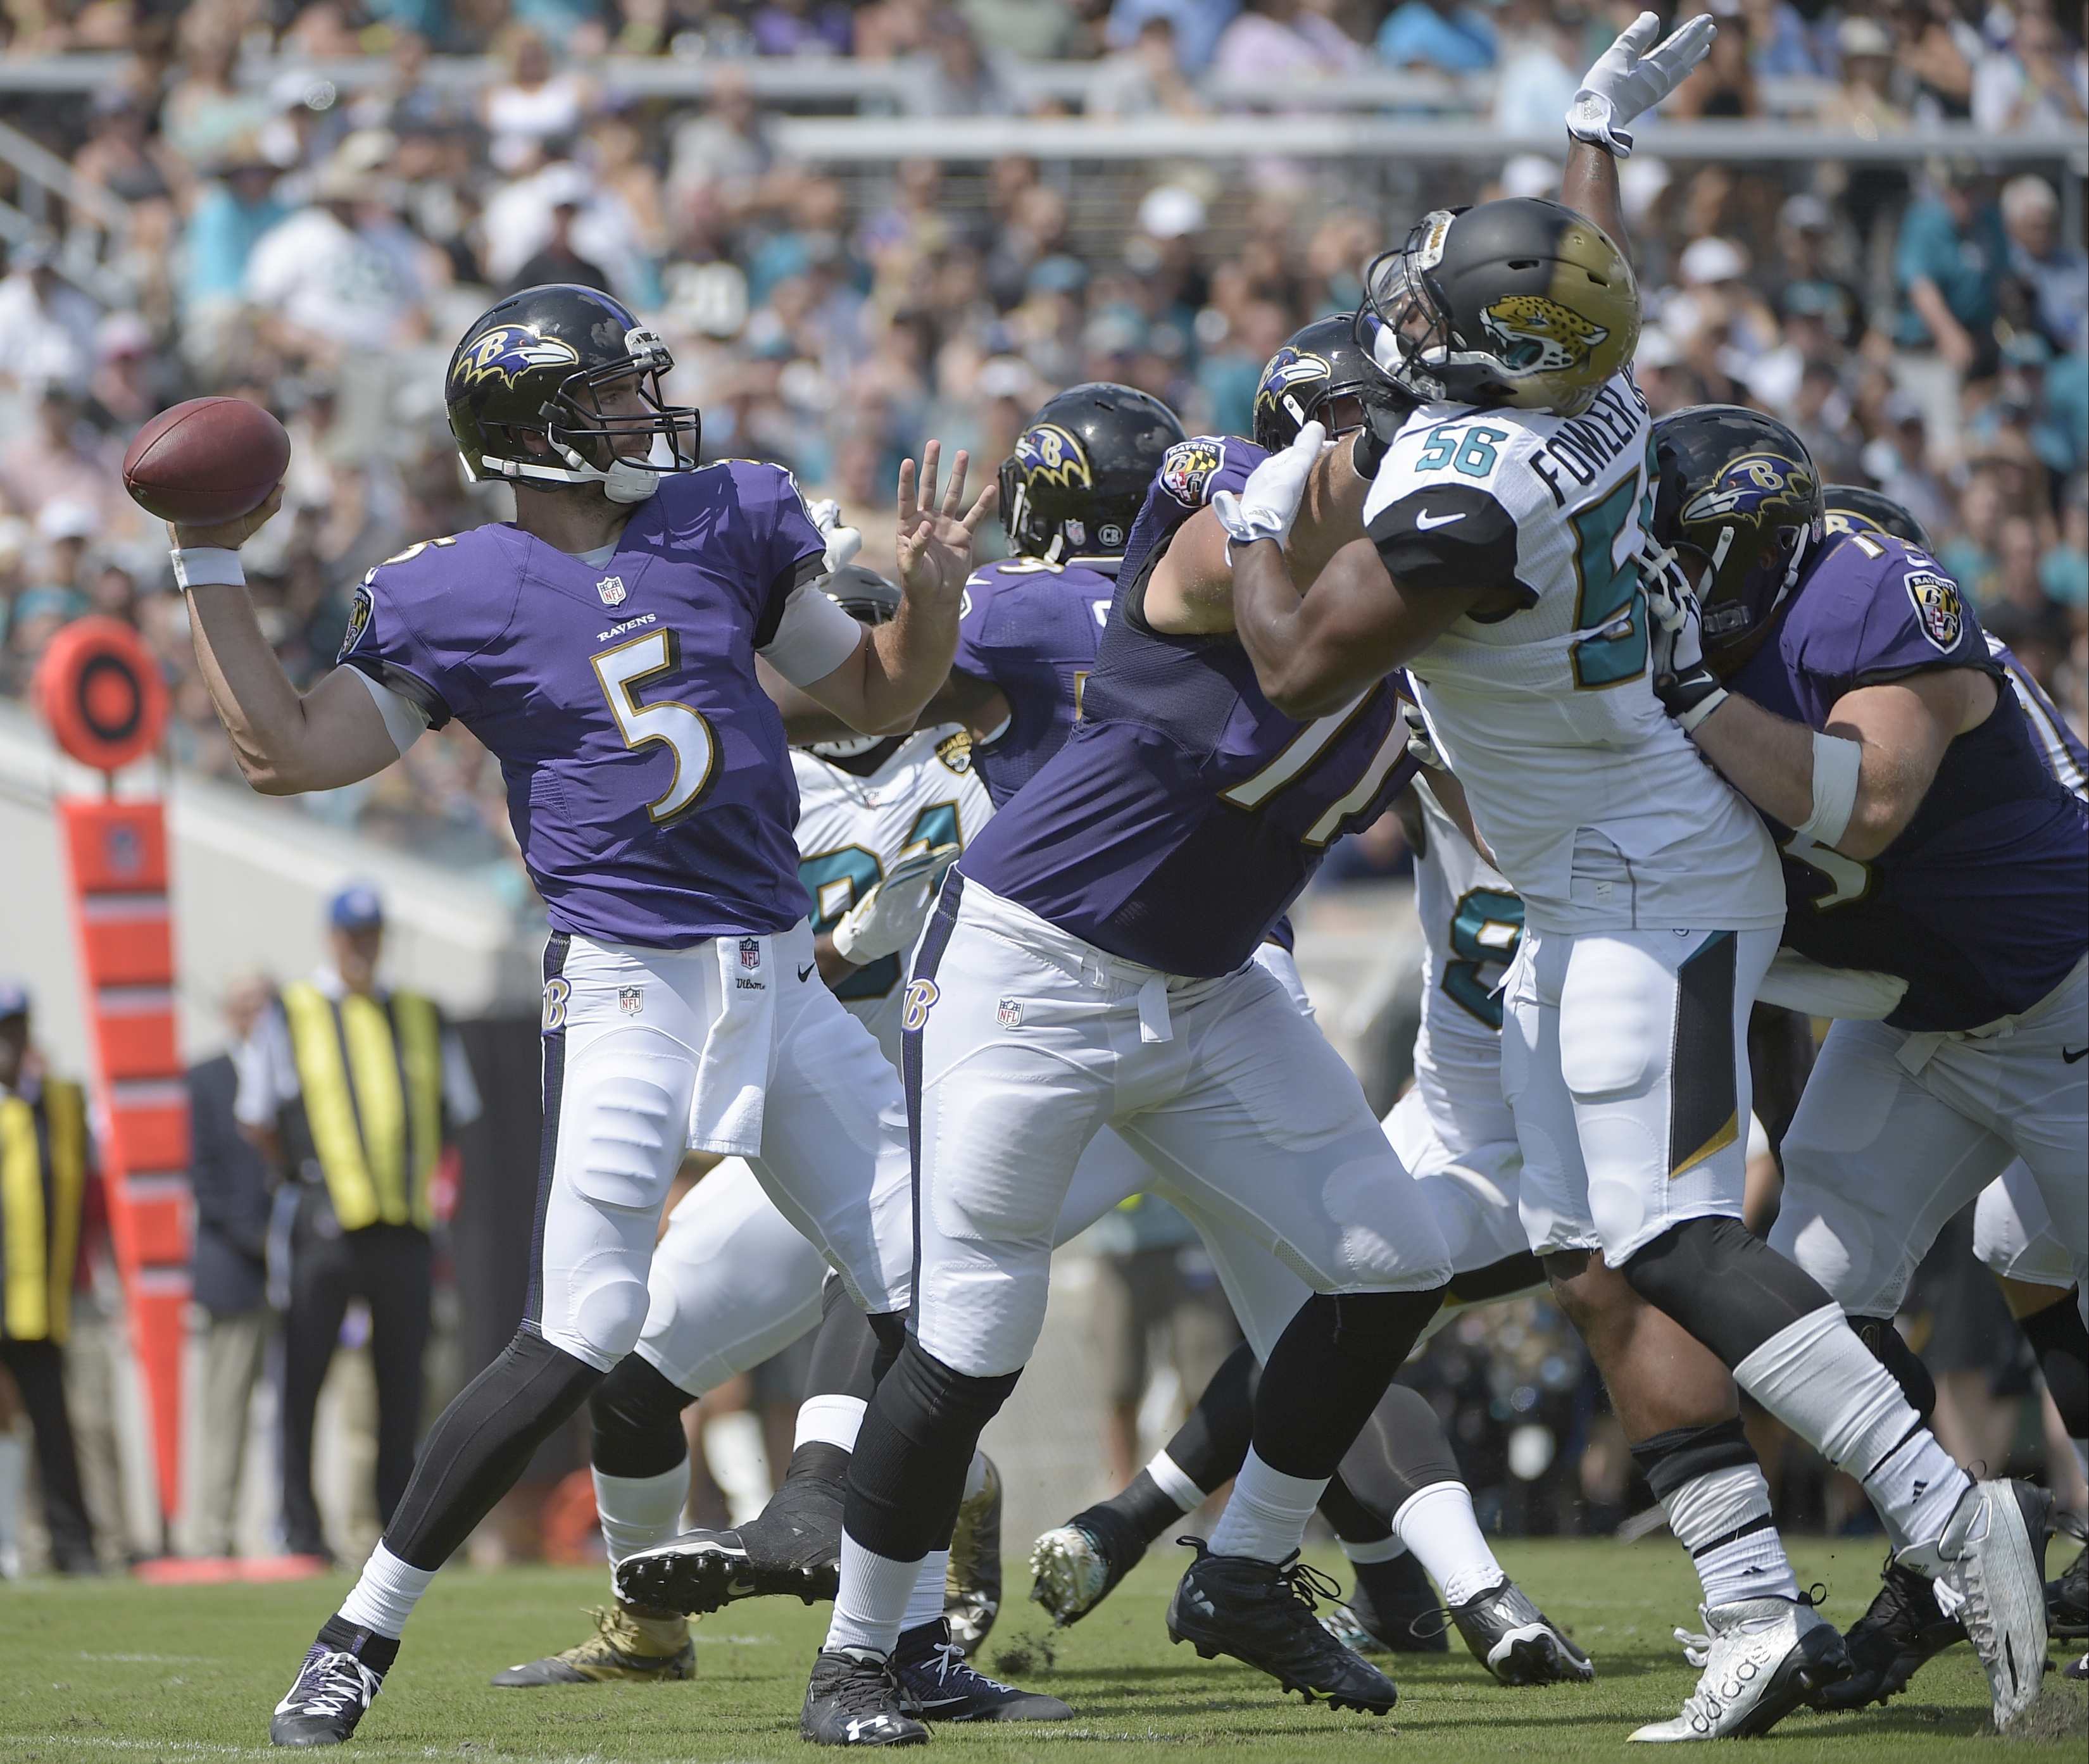 FILE - In this Sept. 25, 2016, file photo, Baltimore Ravens quarterback Joe Flacco (5) throws a pass as he is pressured by Jacksonville Jaguars defensive end Dante Fowler (56) during the first half of an NFL football game in Jacksonville, Fla. On Sunday,